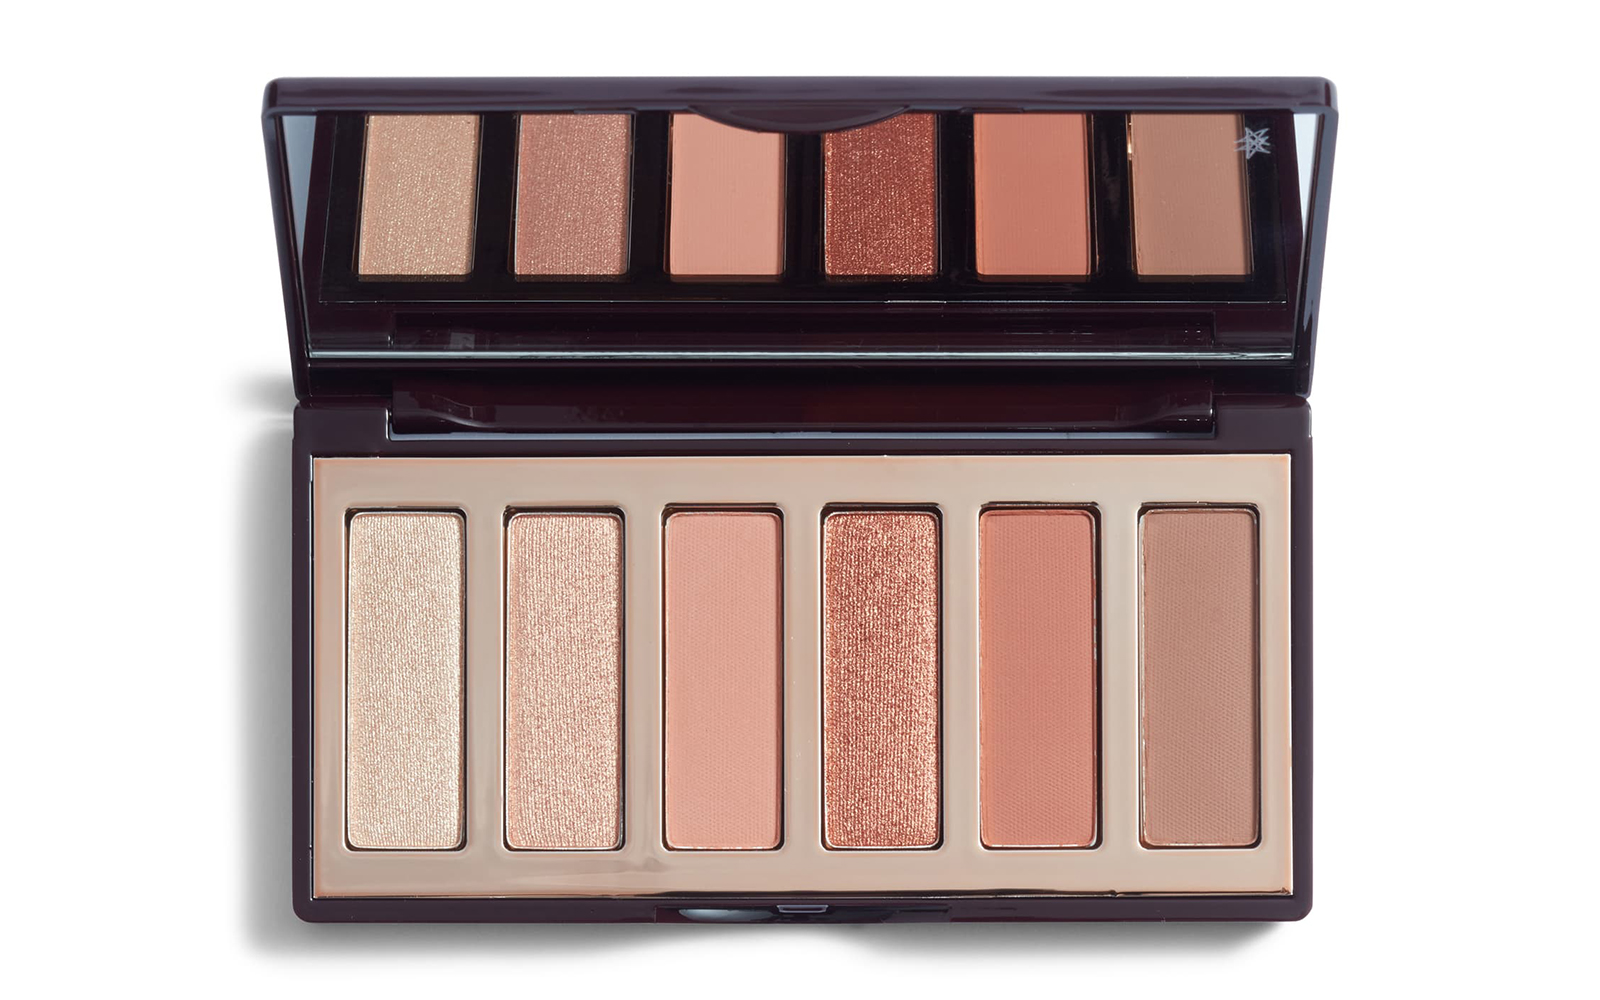 Charlotte Tilbury Easy Portable Pocket Sized Eye Palette